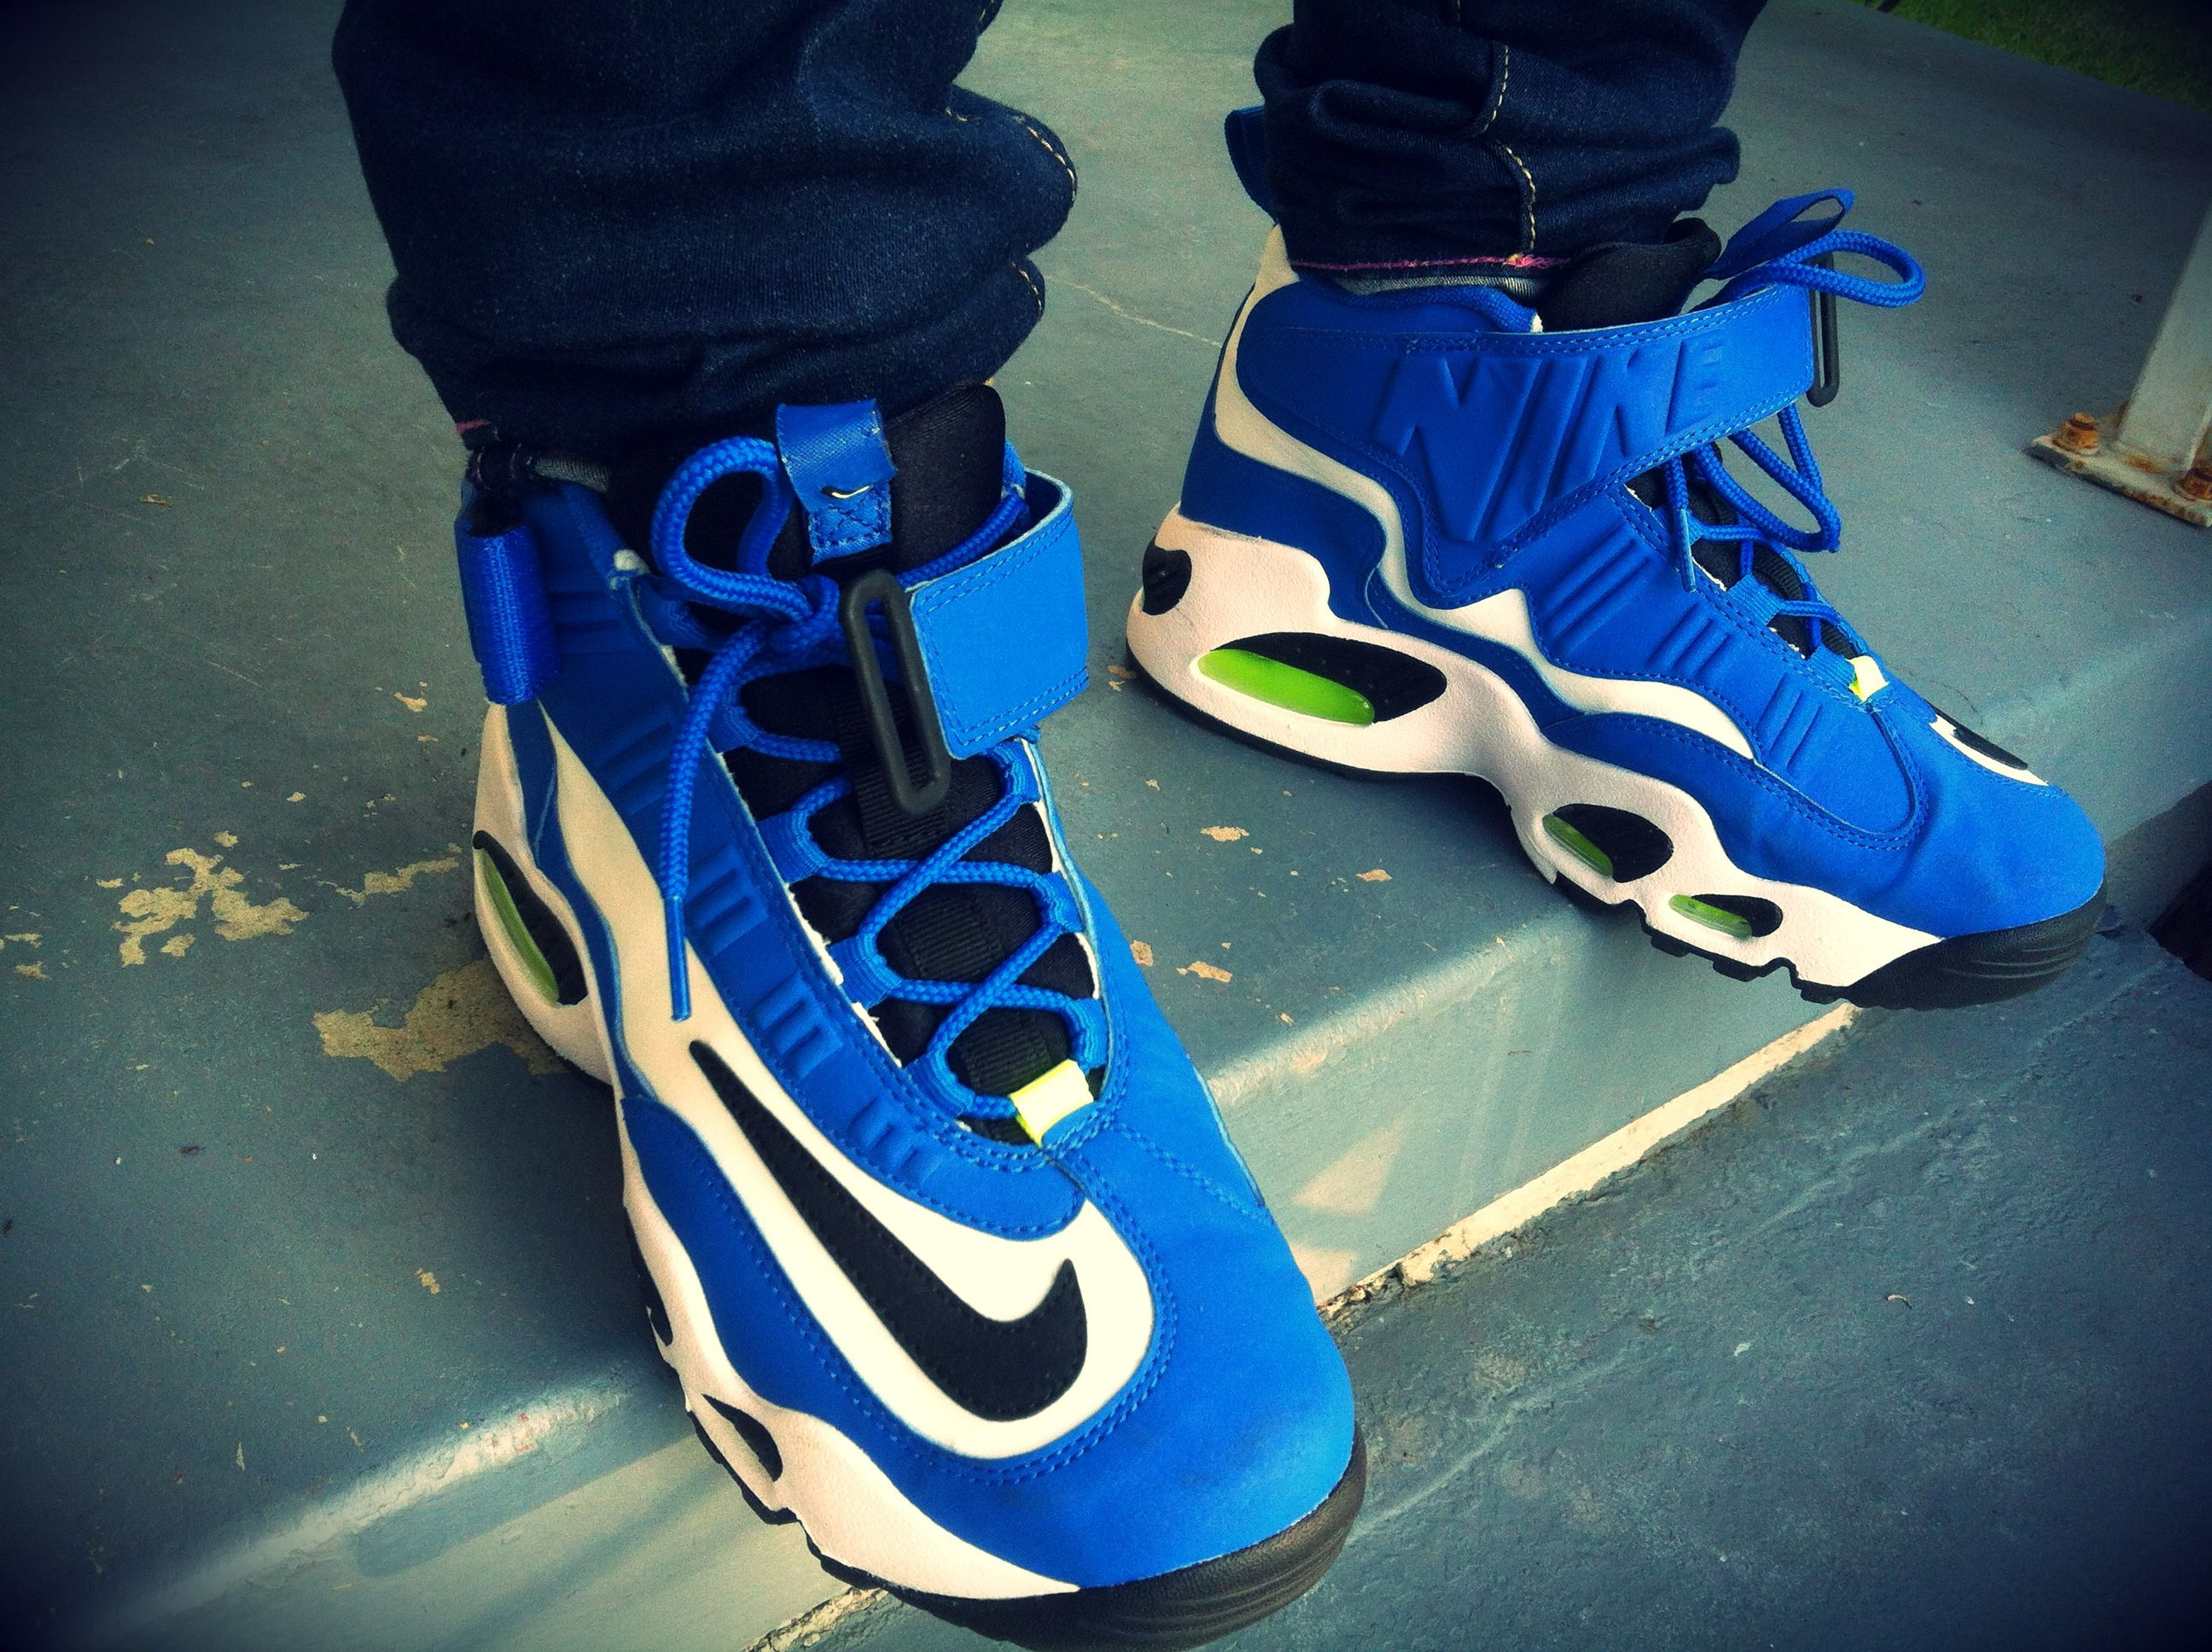 nike griffeys shoes foot shoes and